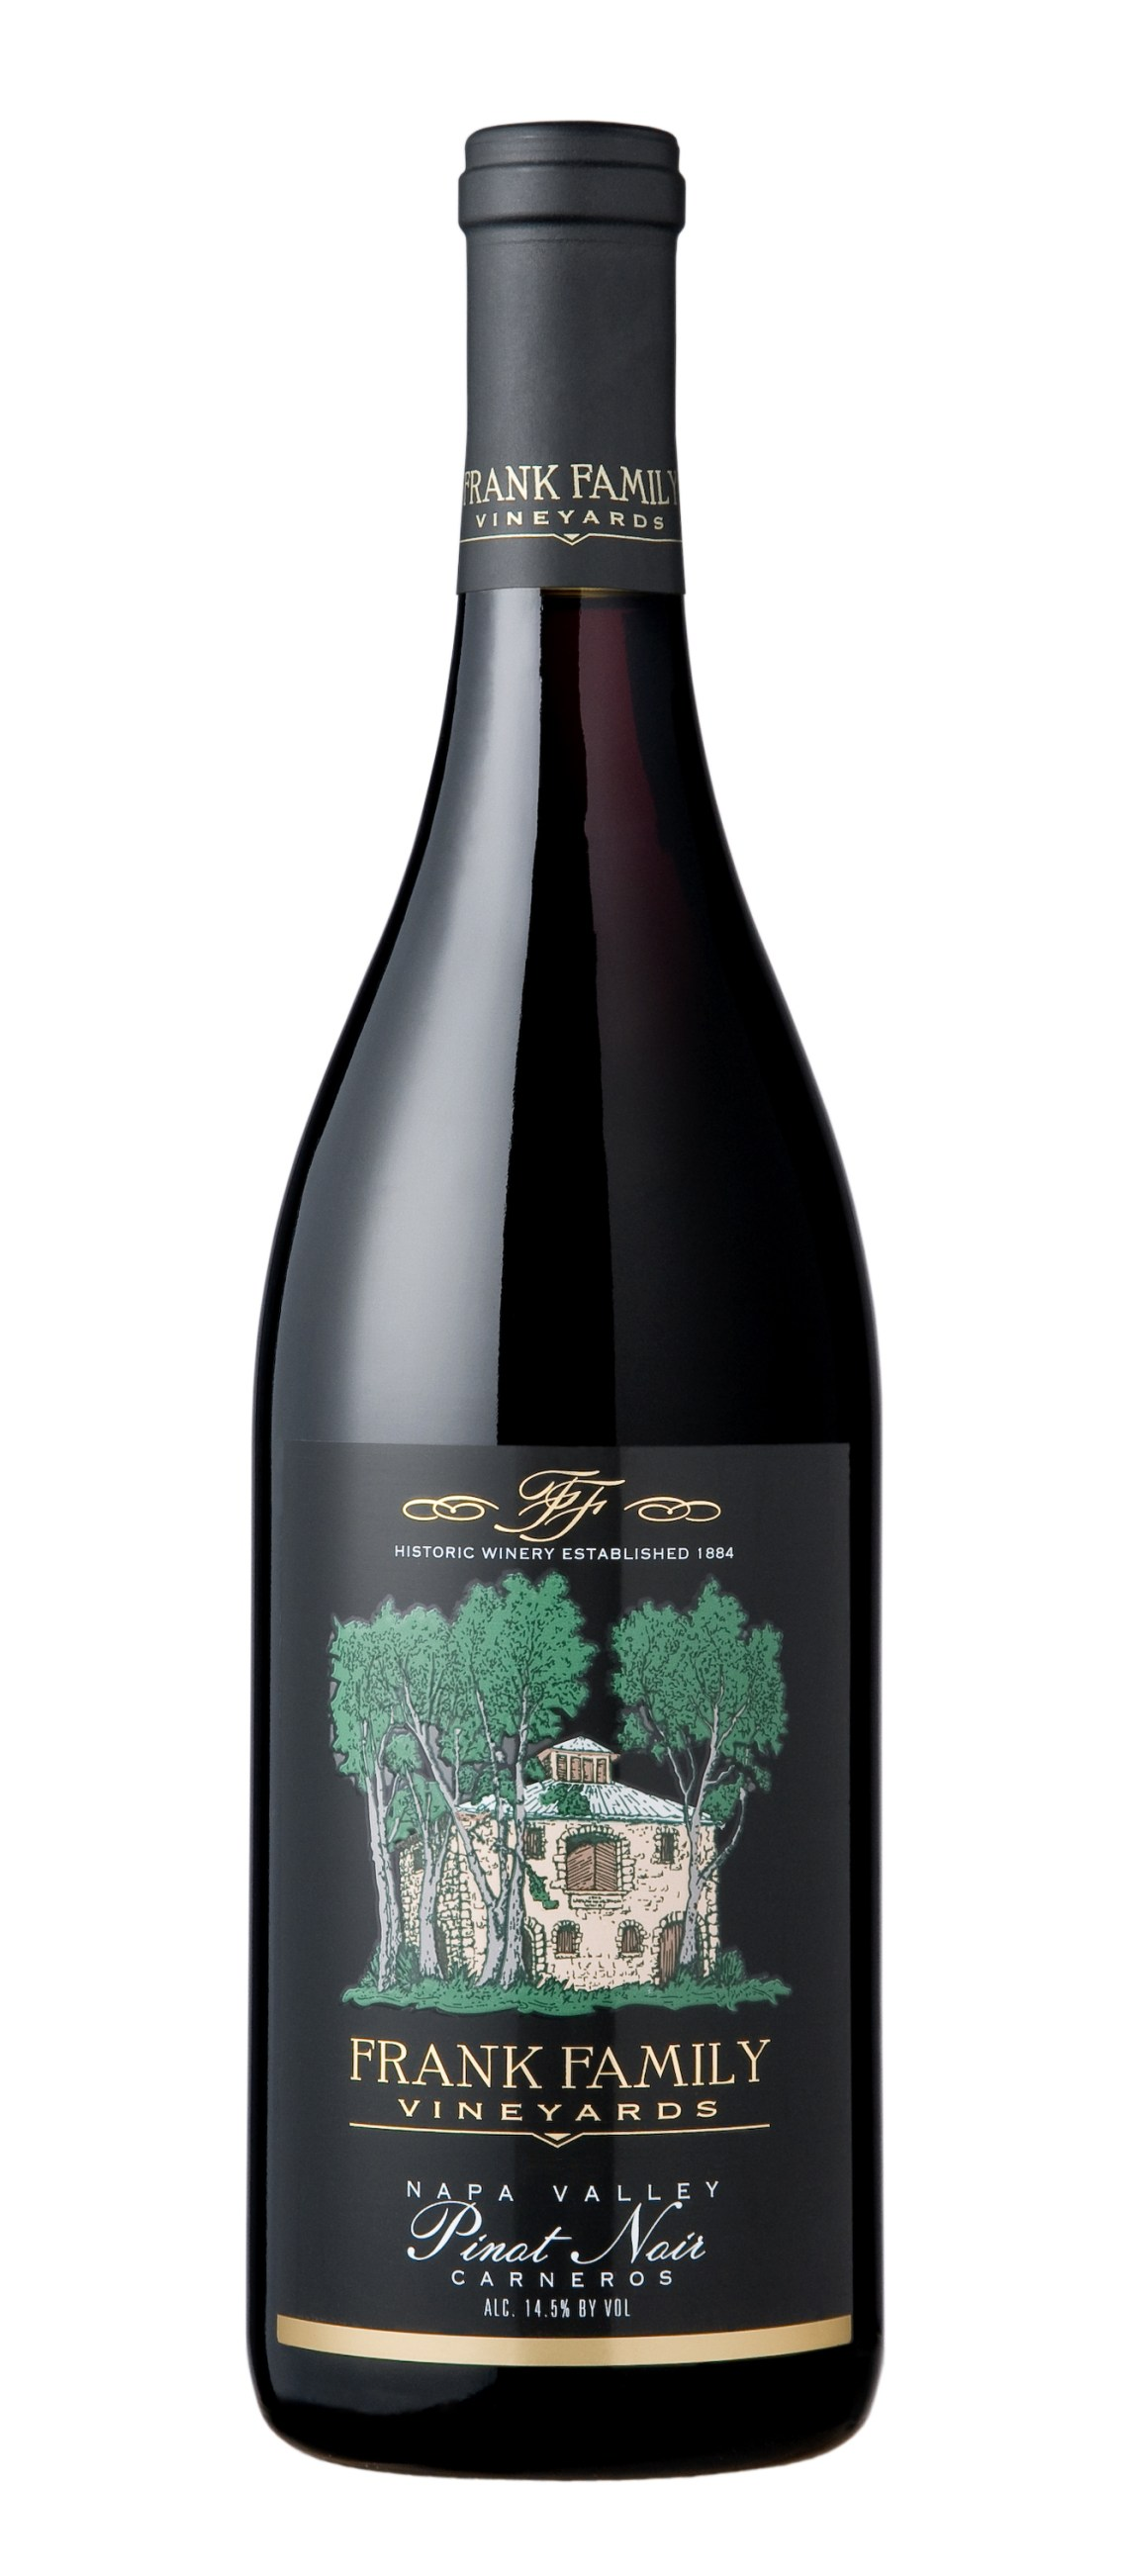 2013 Frank Family Vineyards Pinot Noir Carneros